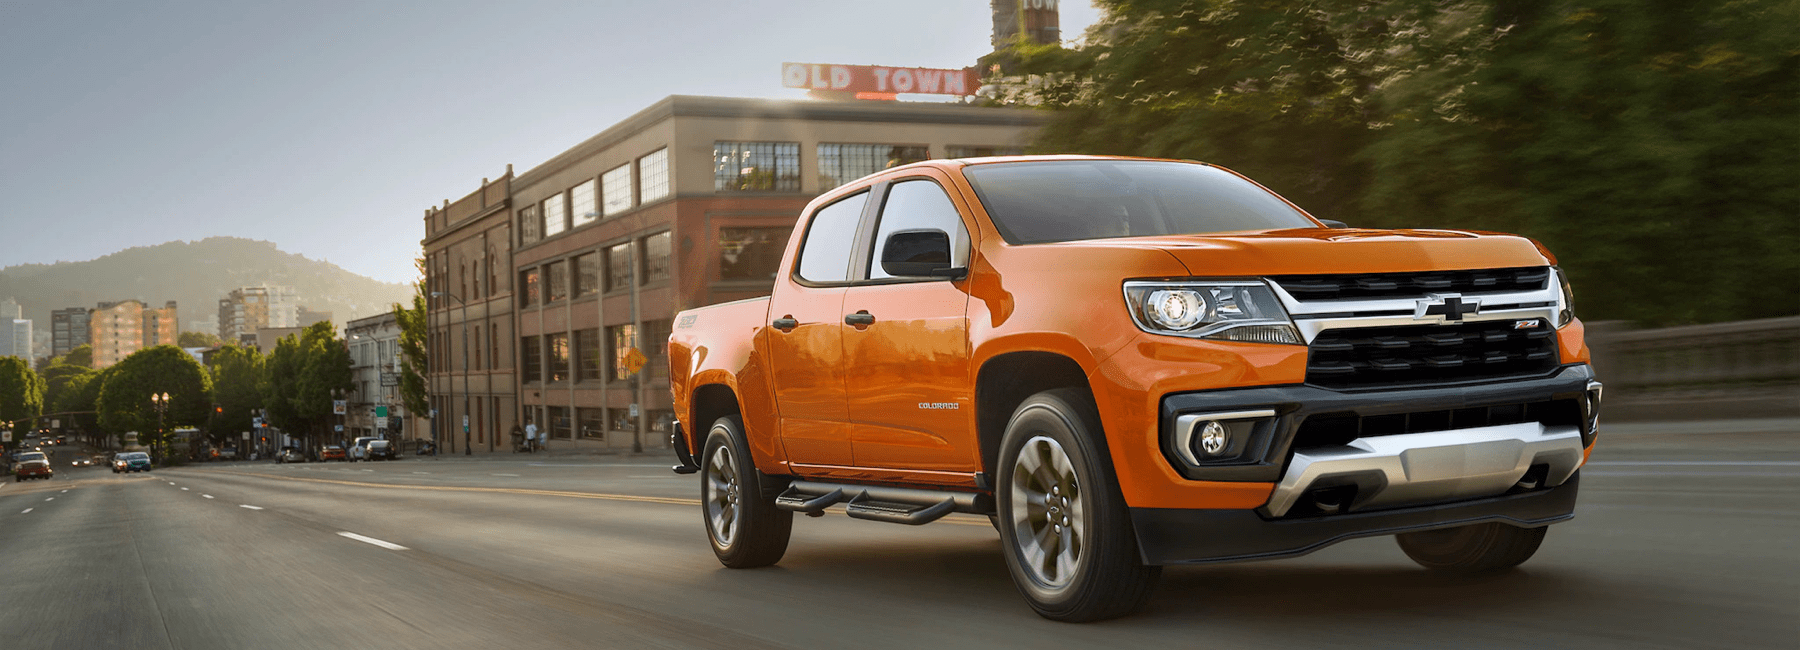 2021 Chevy Colorado drives down town road